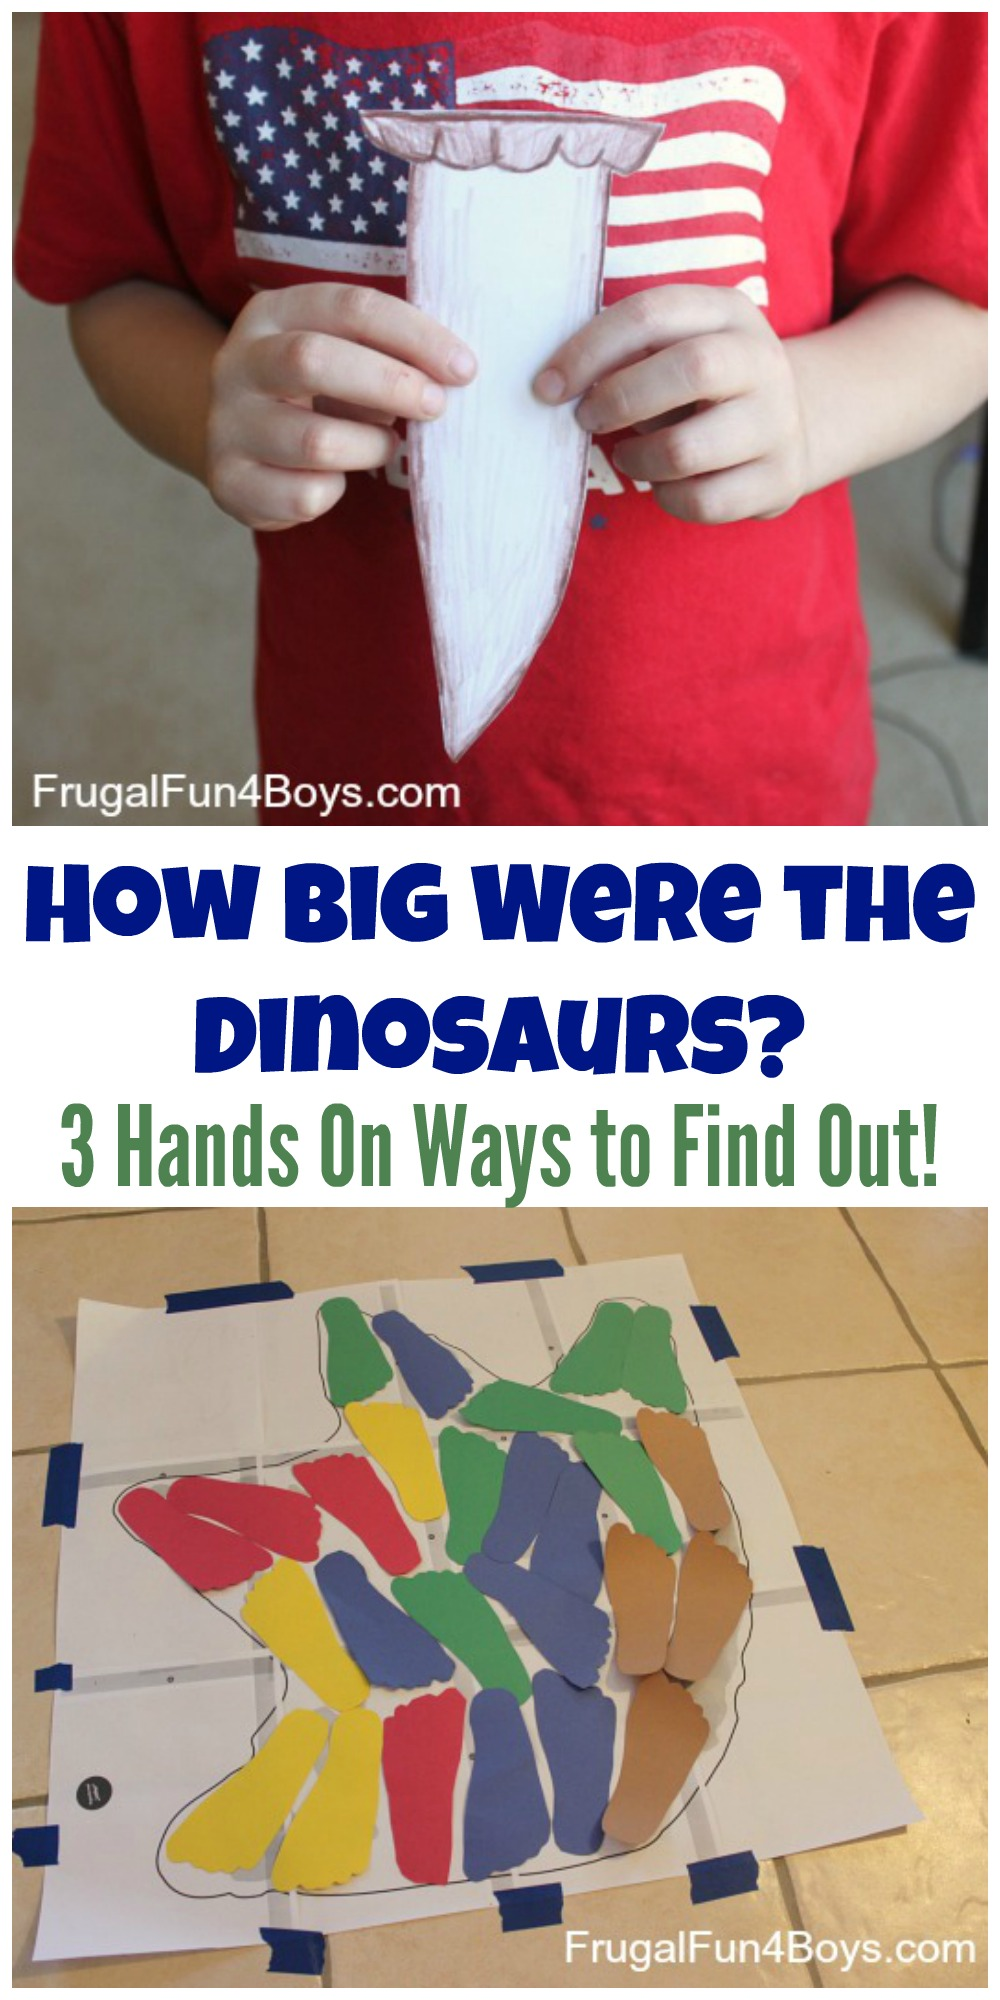 How Big Were the Dinosaurs? Three Hands-on Ways to Find Out!